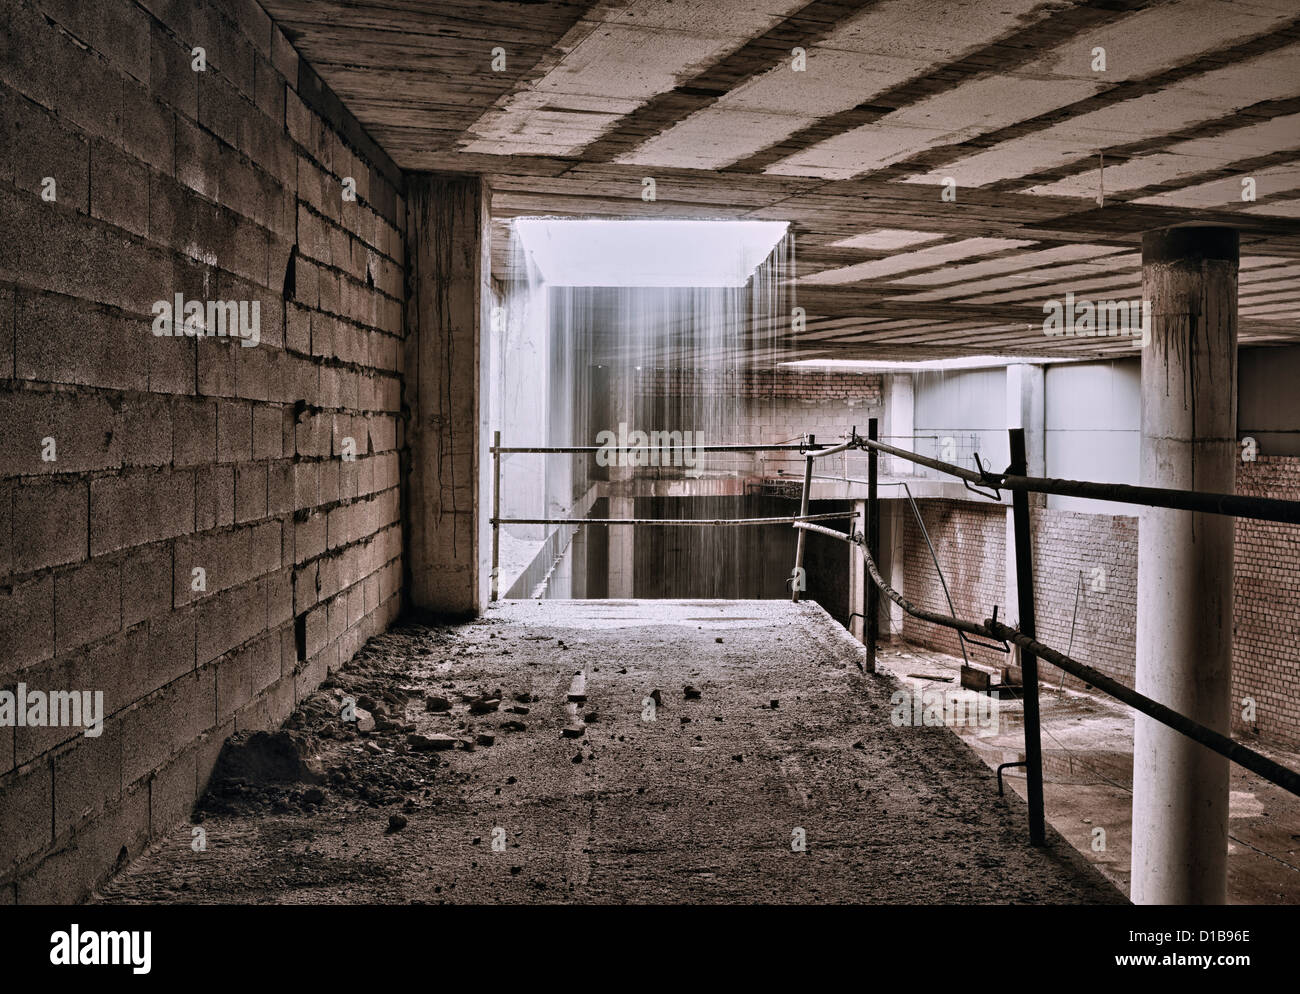 Abandoned building. - Stock Image